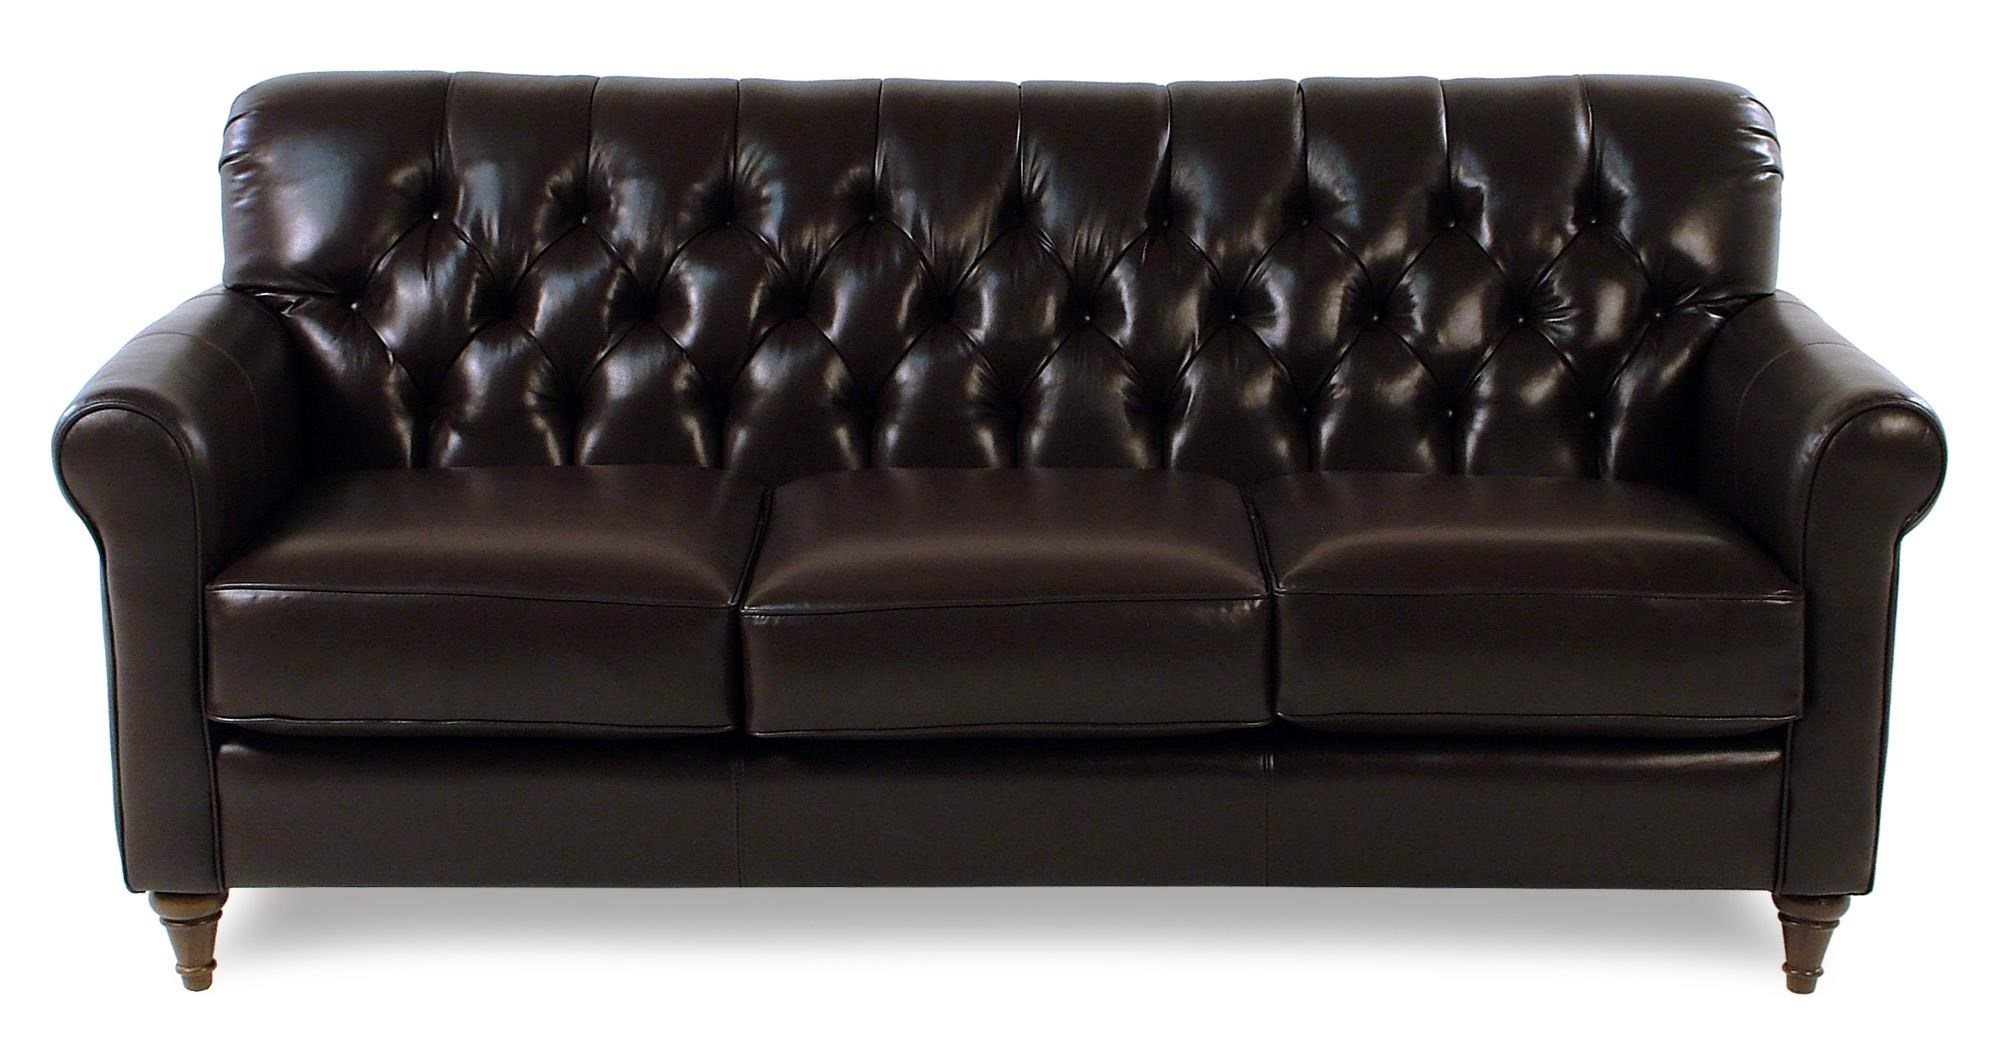 Decor-Rest Maxwell Tufted Leather Sofa - Item Number: 3478S-CHESTNUT